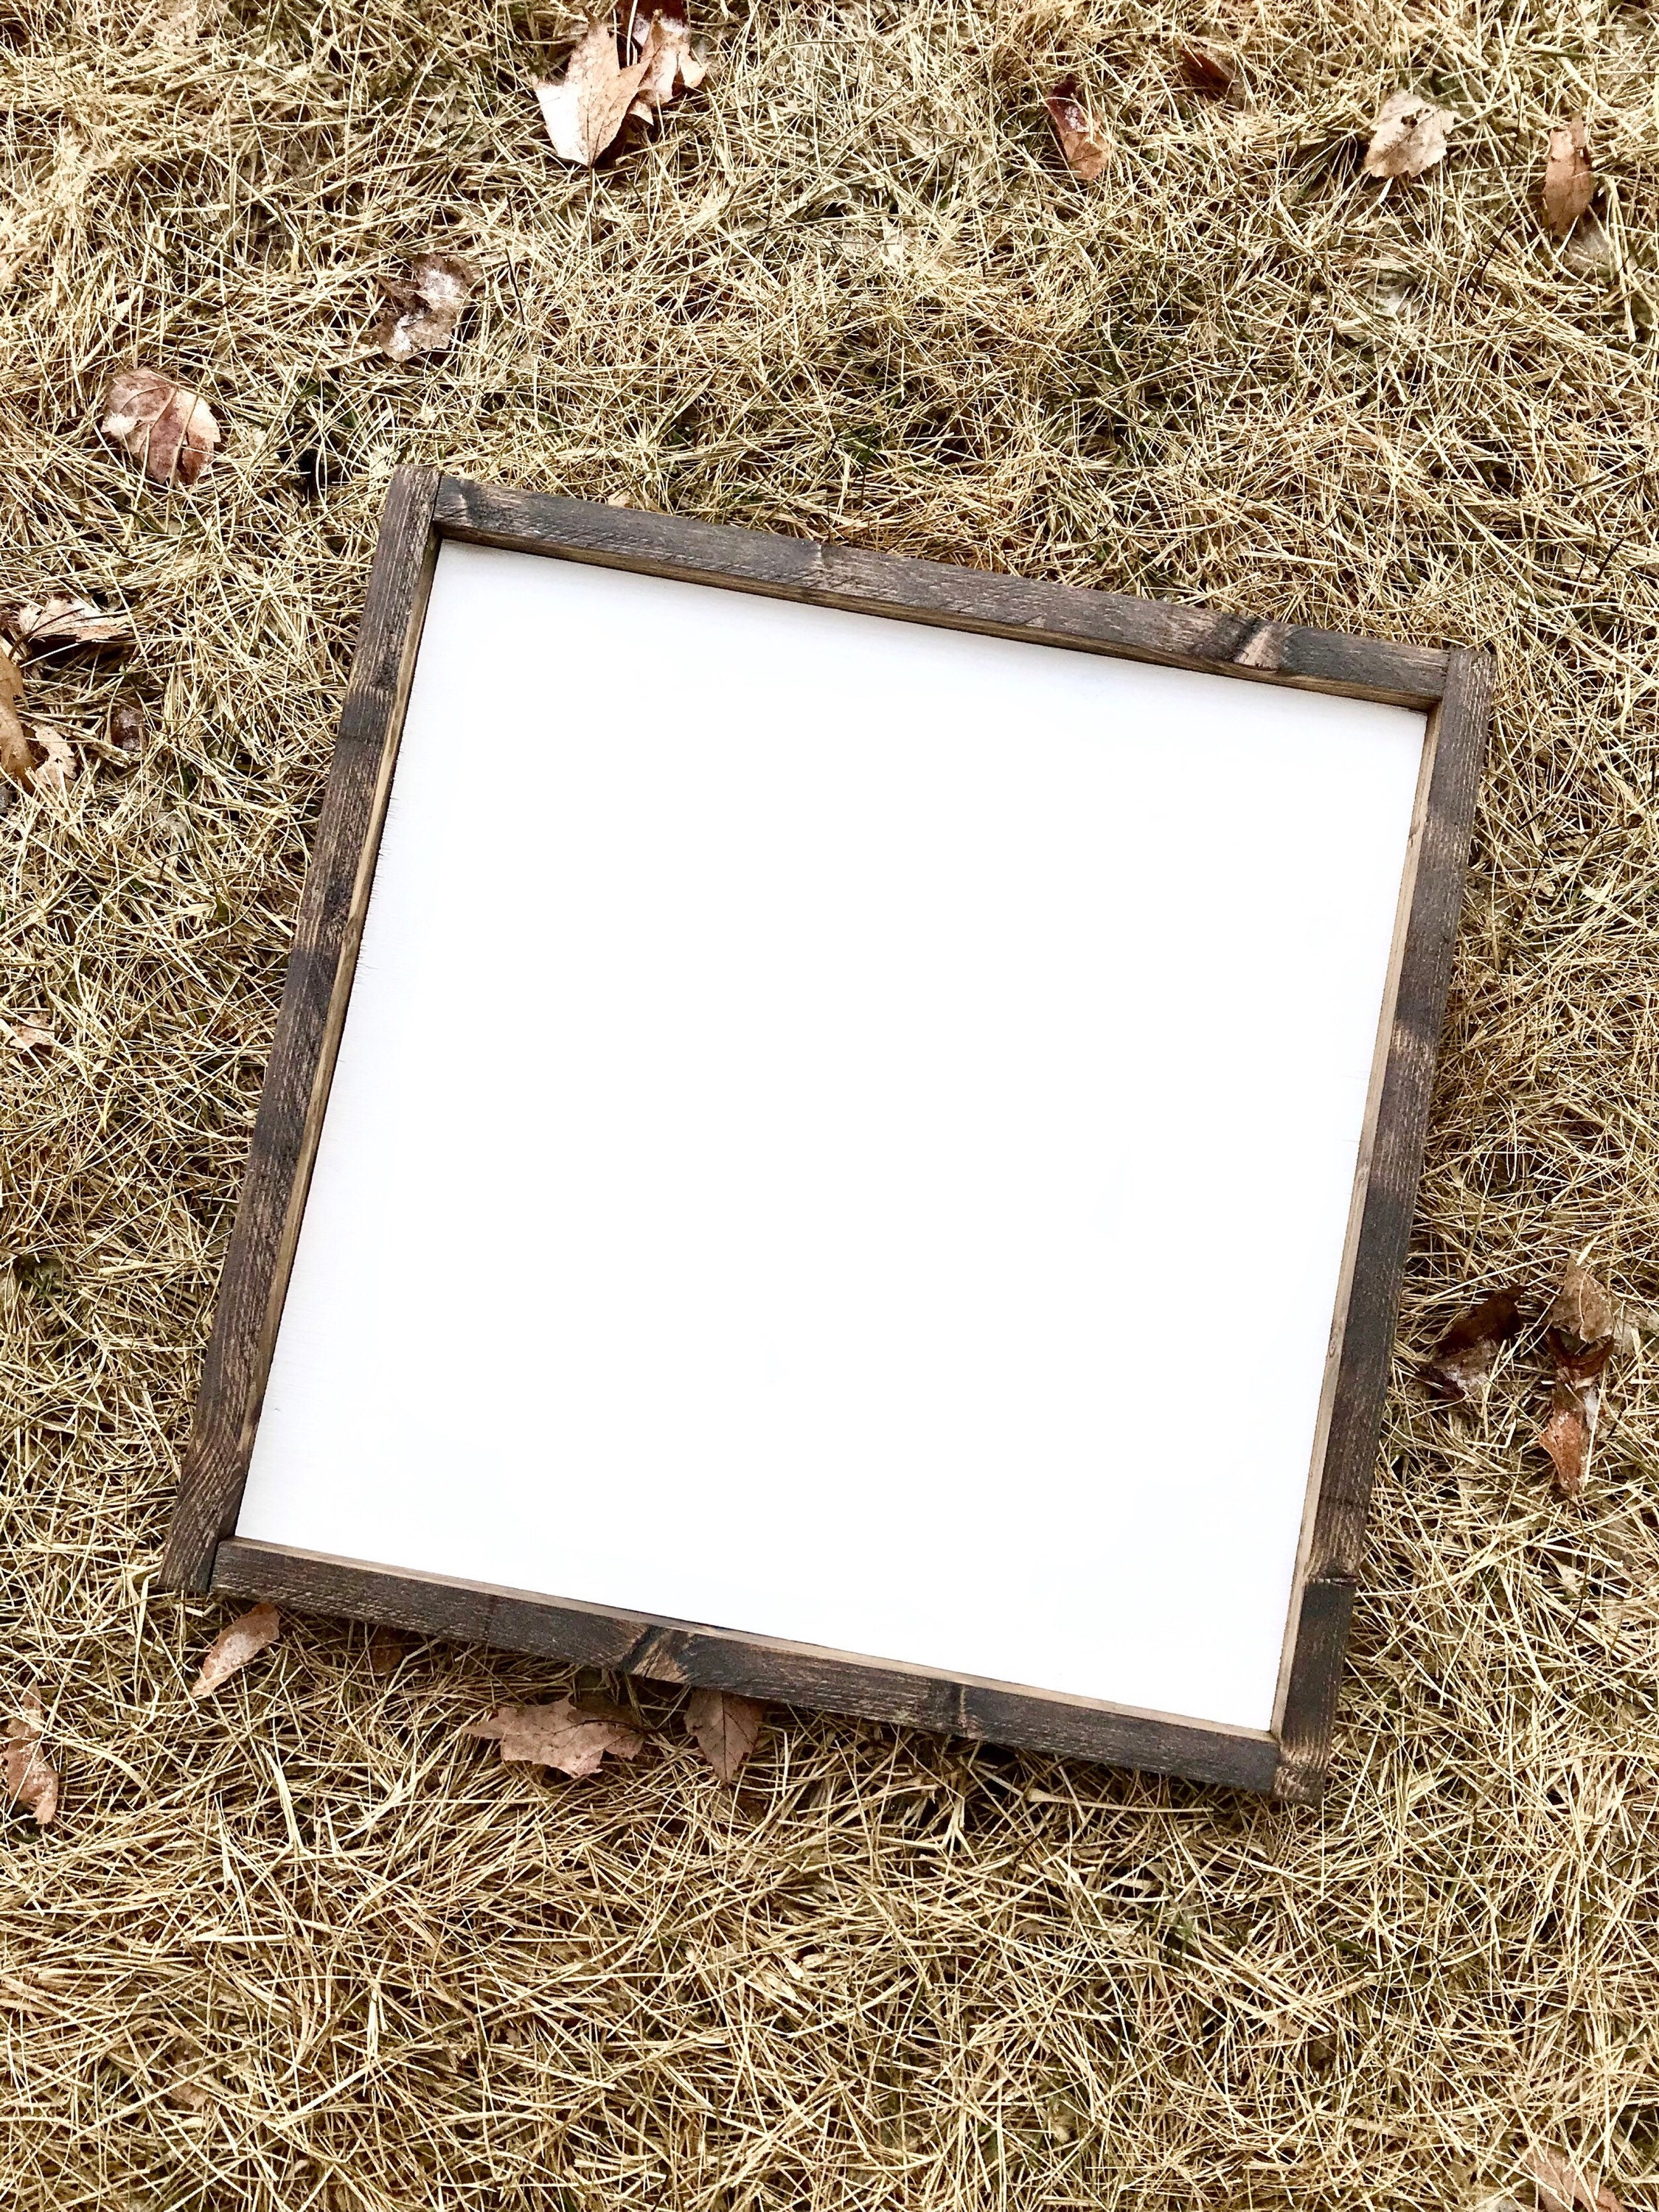 Fein Make Your Own Wood Picture Frame Galerie - Rahmen Ideen ...